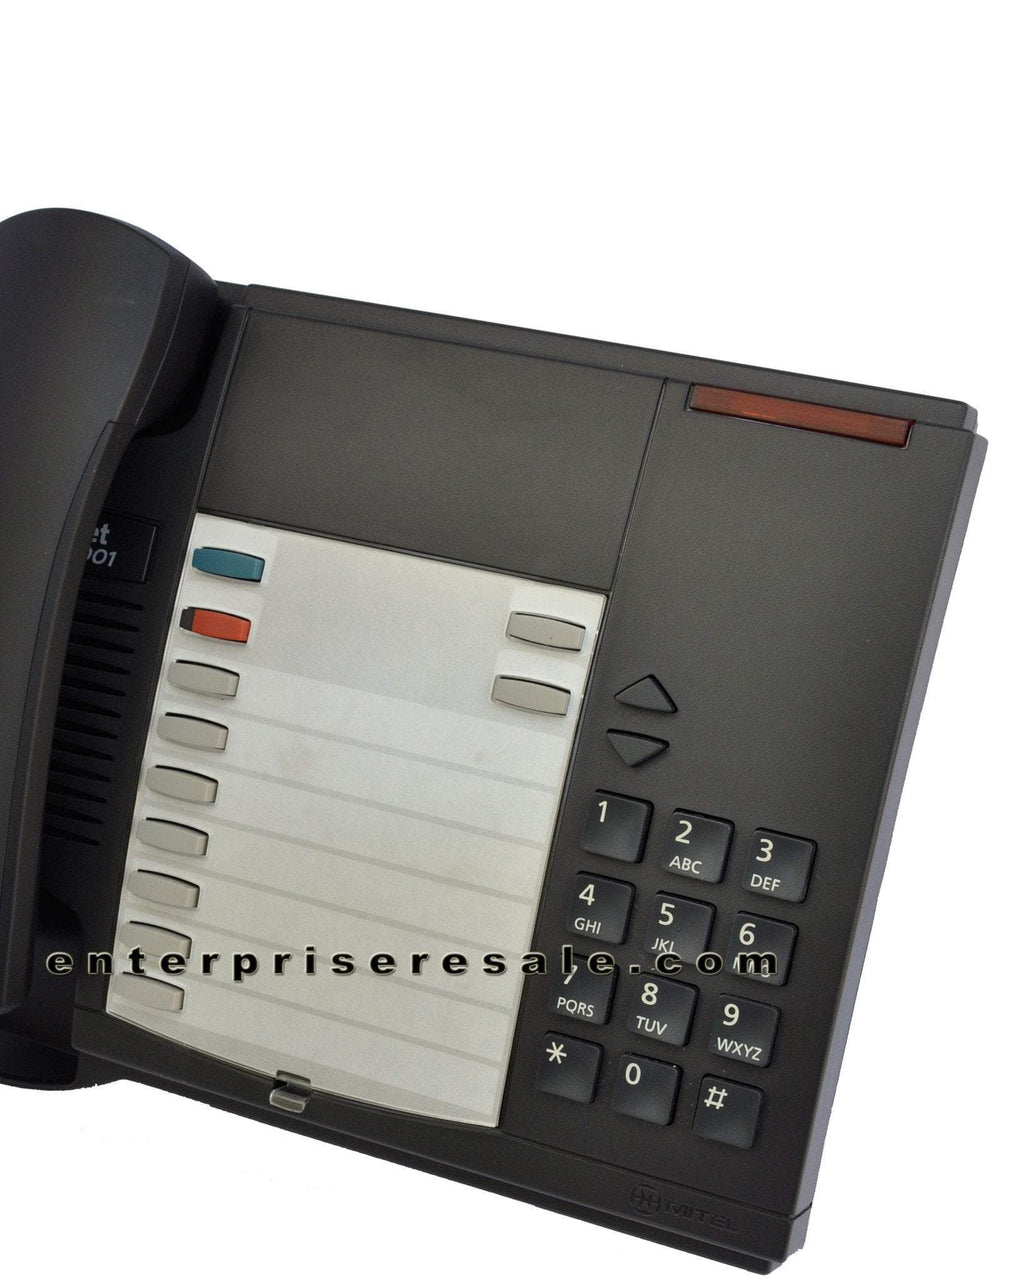 Mitel Phone Mitel 4001 Phone Dark Grey (9132-001-200-NA) Superset